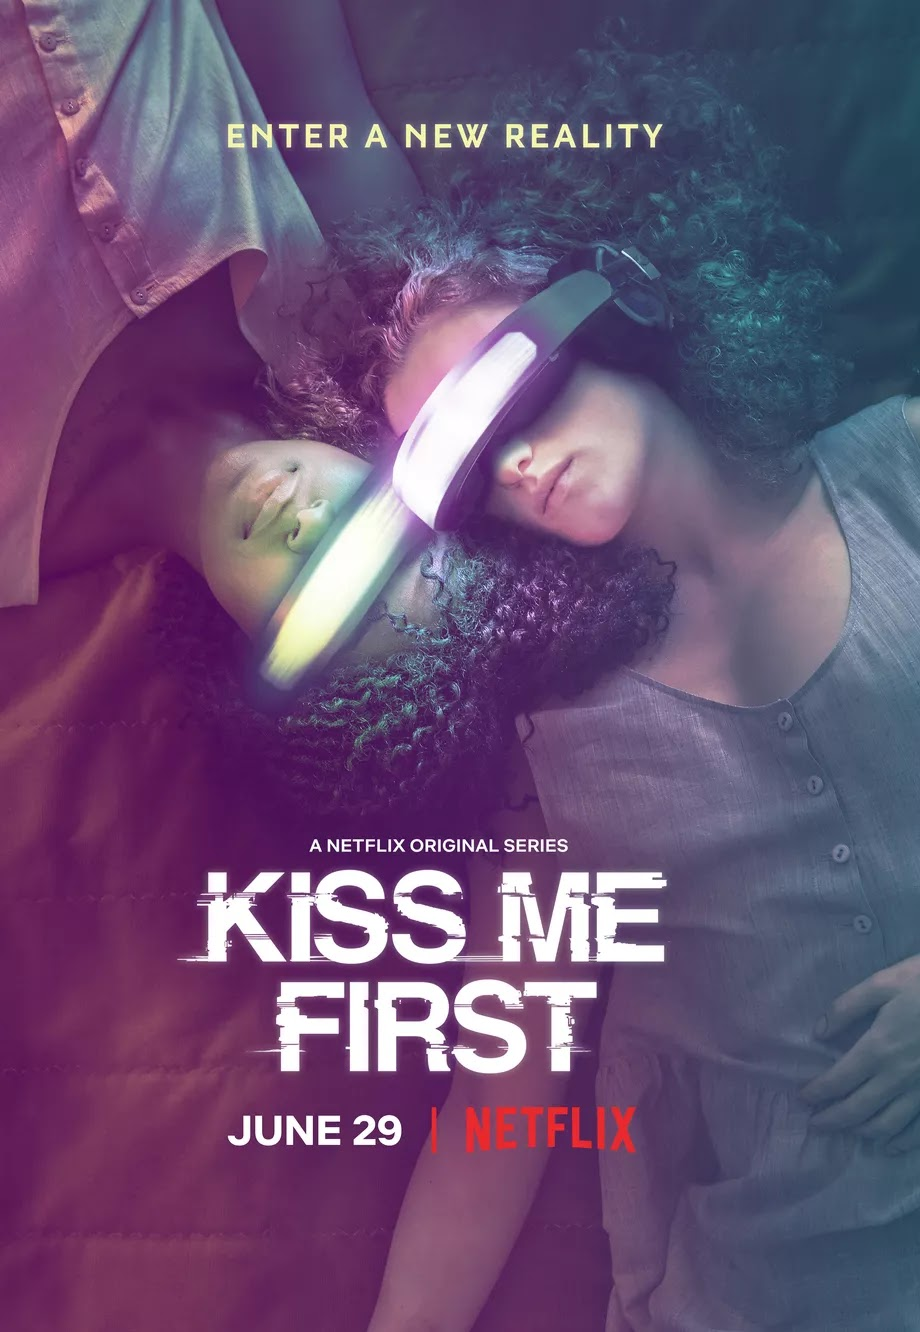 Netflix's New Kiss Me First Series is Like Ready Player One